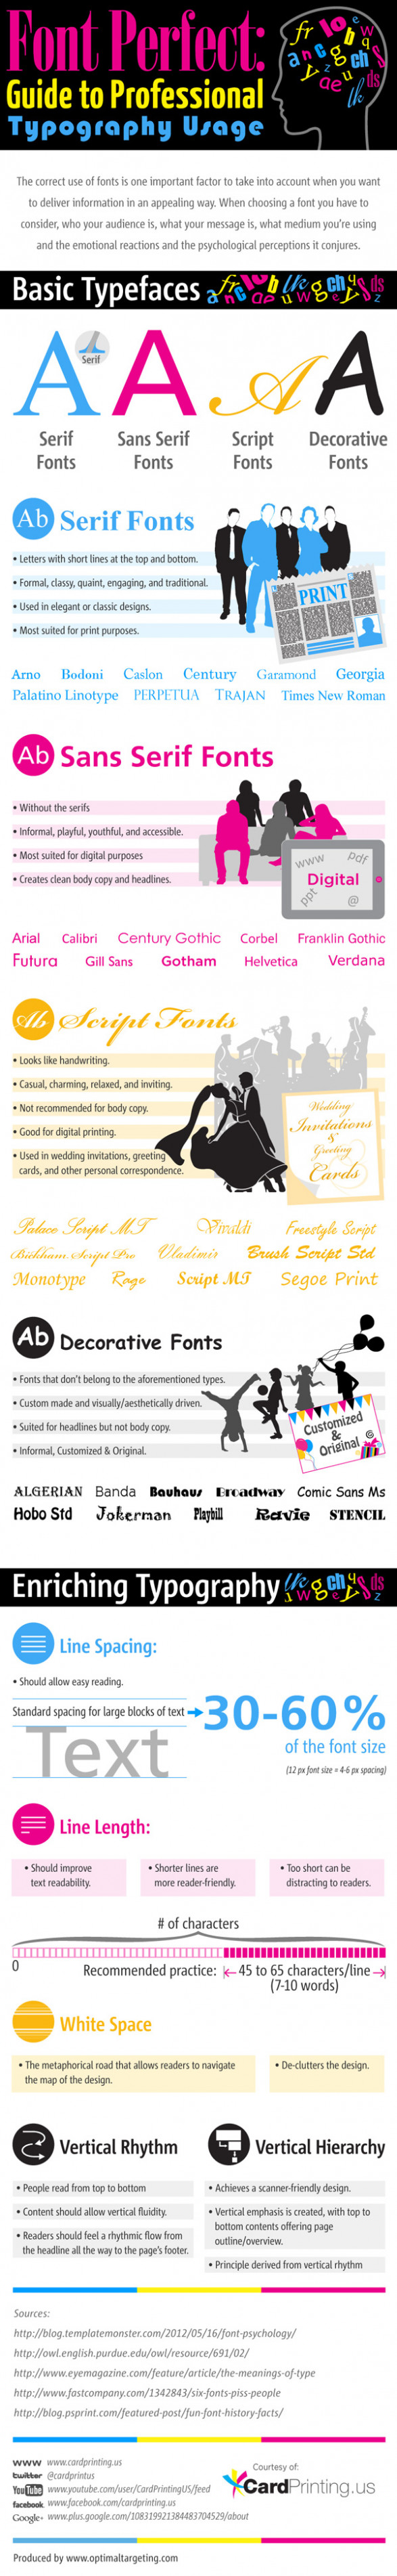 Font Perfect: Guide to Professional Typography Usage